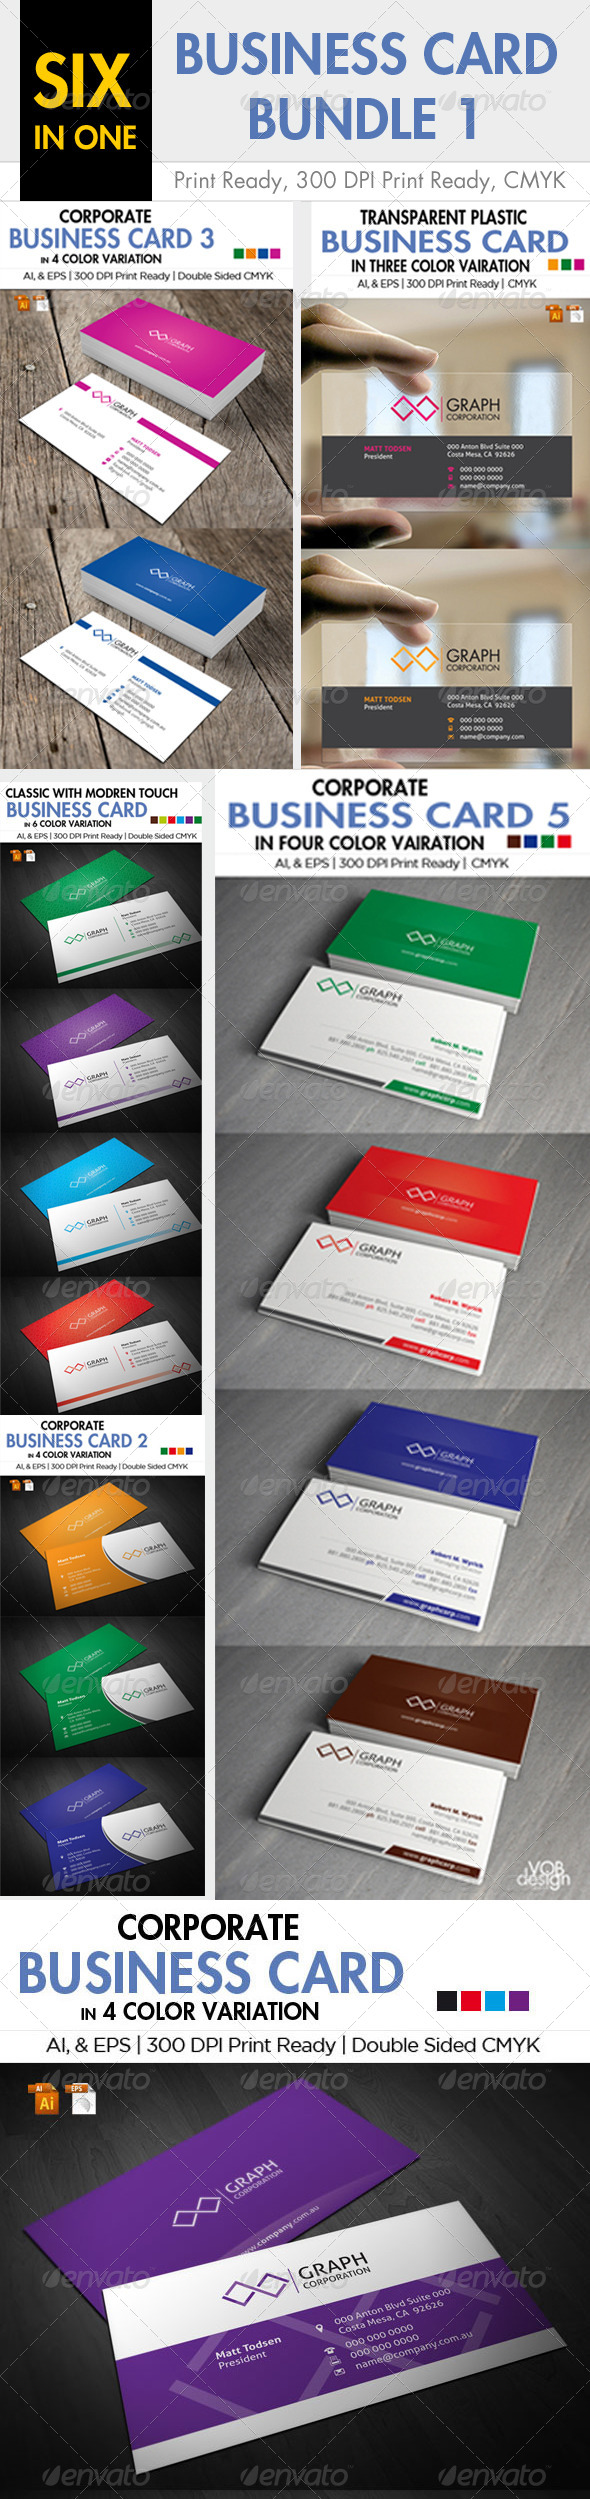 6 in one Business Card Bundle 1 - Business Cards Print Templates